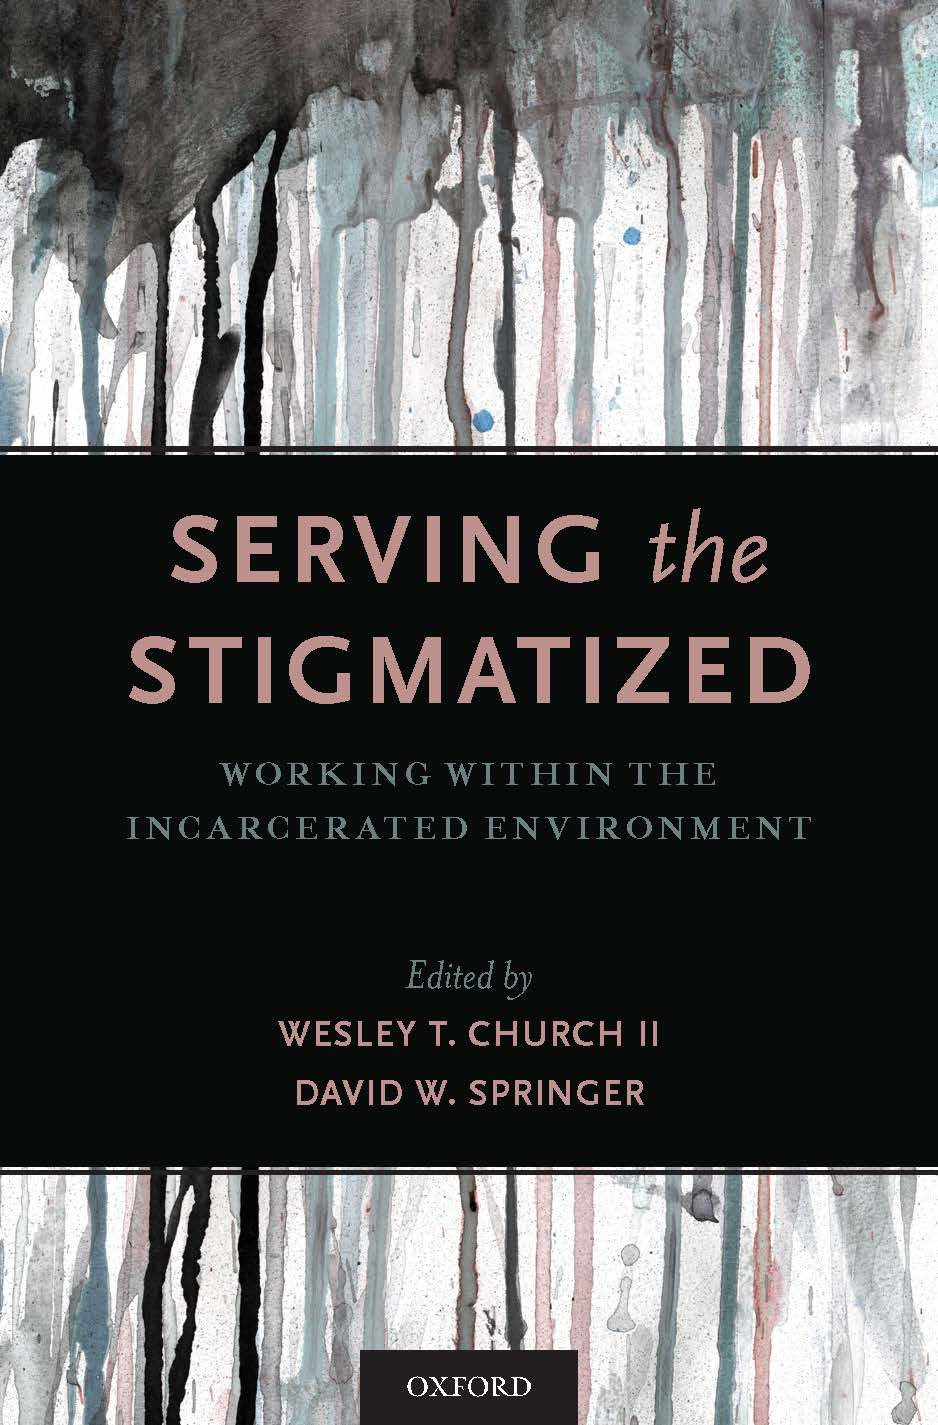 Cover of Serving the Stigmatized by David Springer